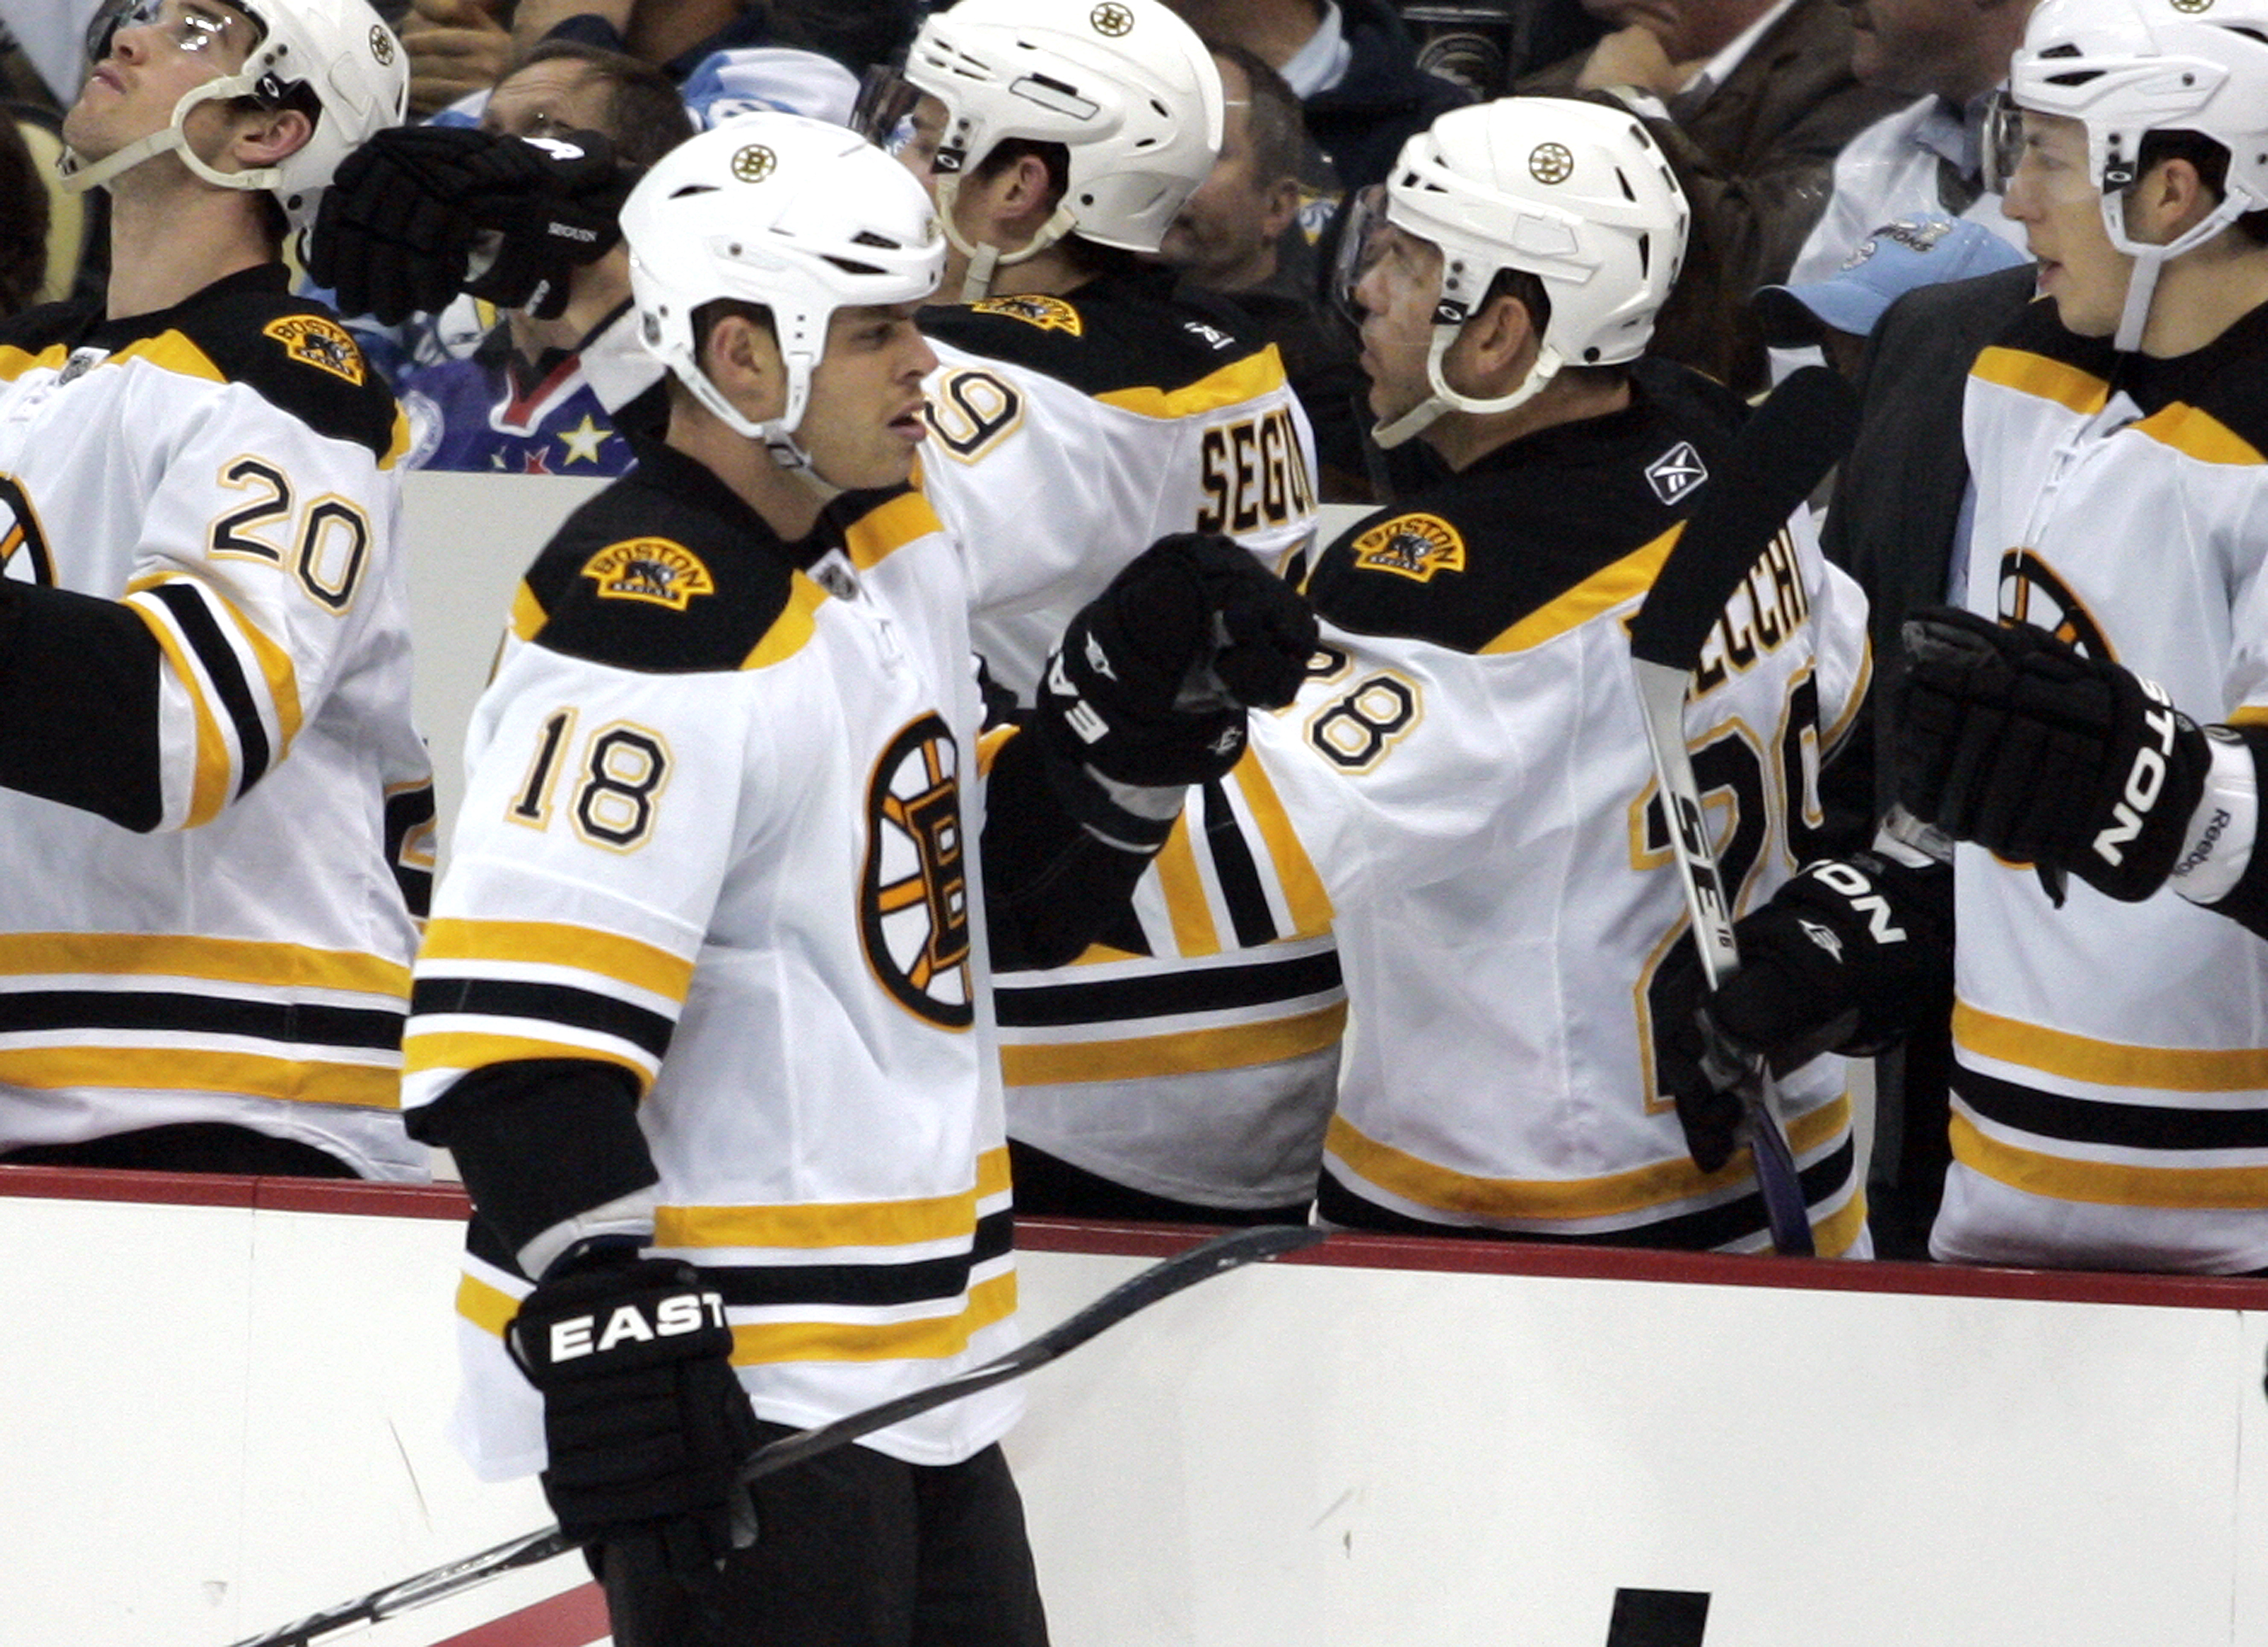 PITTSBURGH - NOVEMBER 10:  Nathan Horton #18 of the Boston Bruins celebrates his third period goal with teammates against the Pittsburgh Penguins at Consol Energy Center on November 10, 2010 in Pittsburgh, Pennsylvania.  The Bruins defeated the Penguins 7